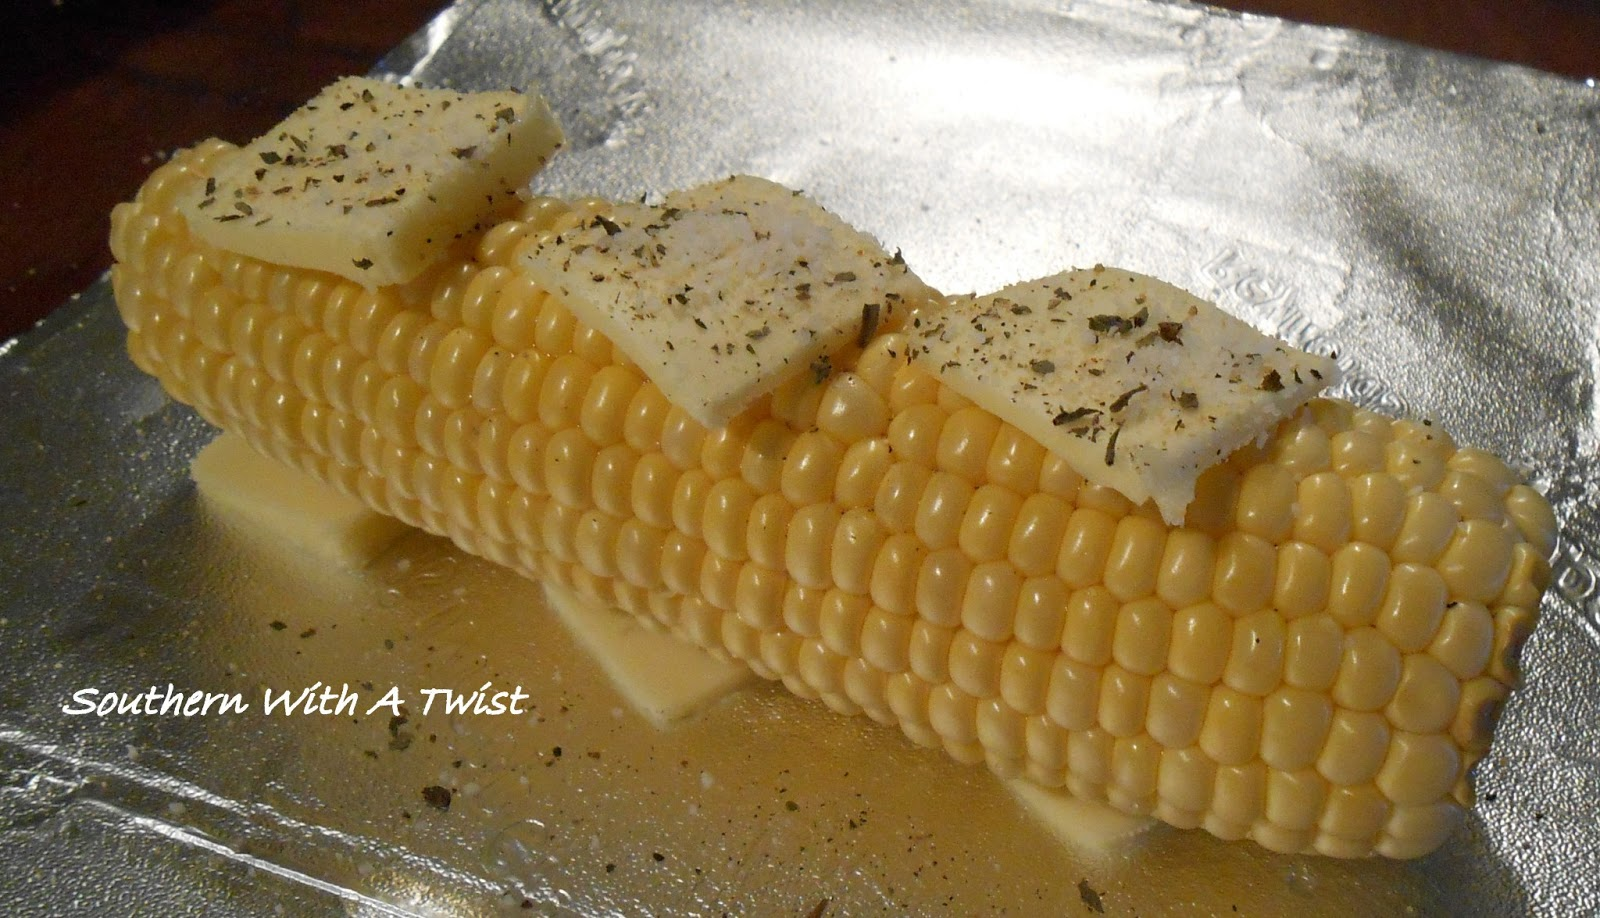 Southern With A Twist: Oven Roasted Corn on the Cob